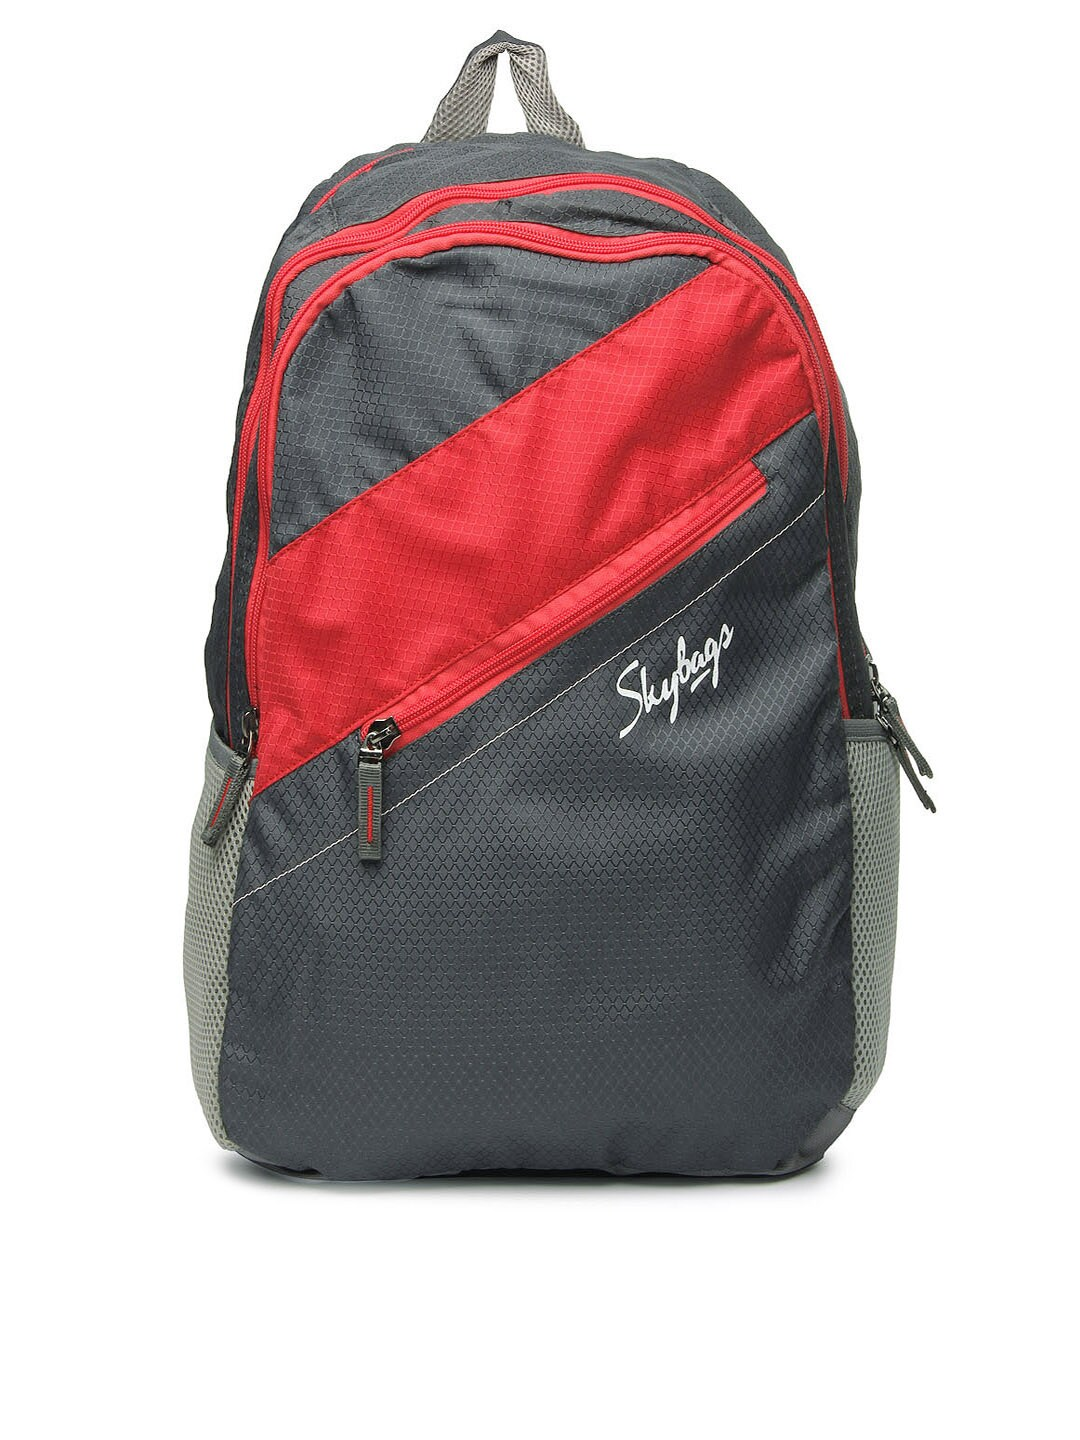 acf68f2256ec Buy Travel Backpacks Online- Fenix Toulouse Handball